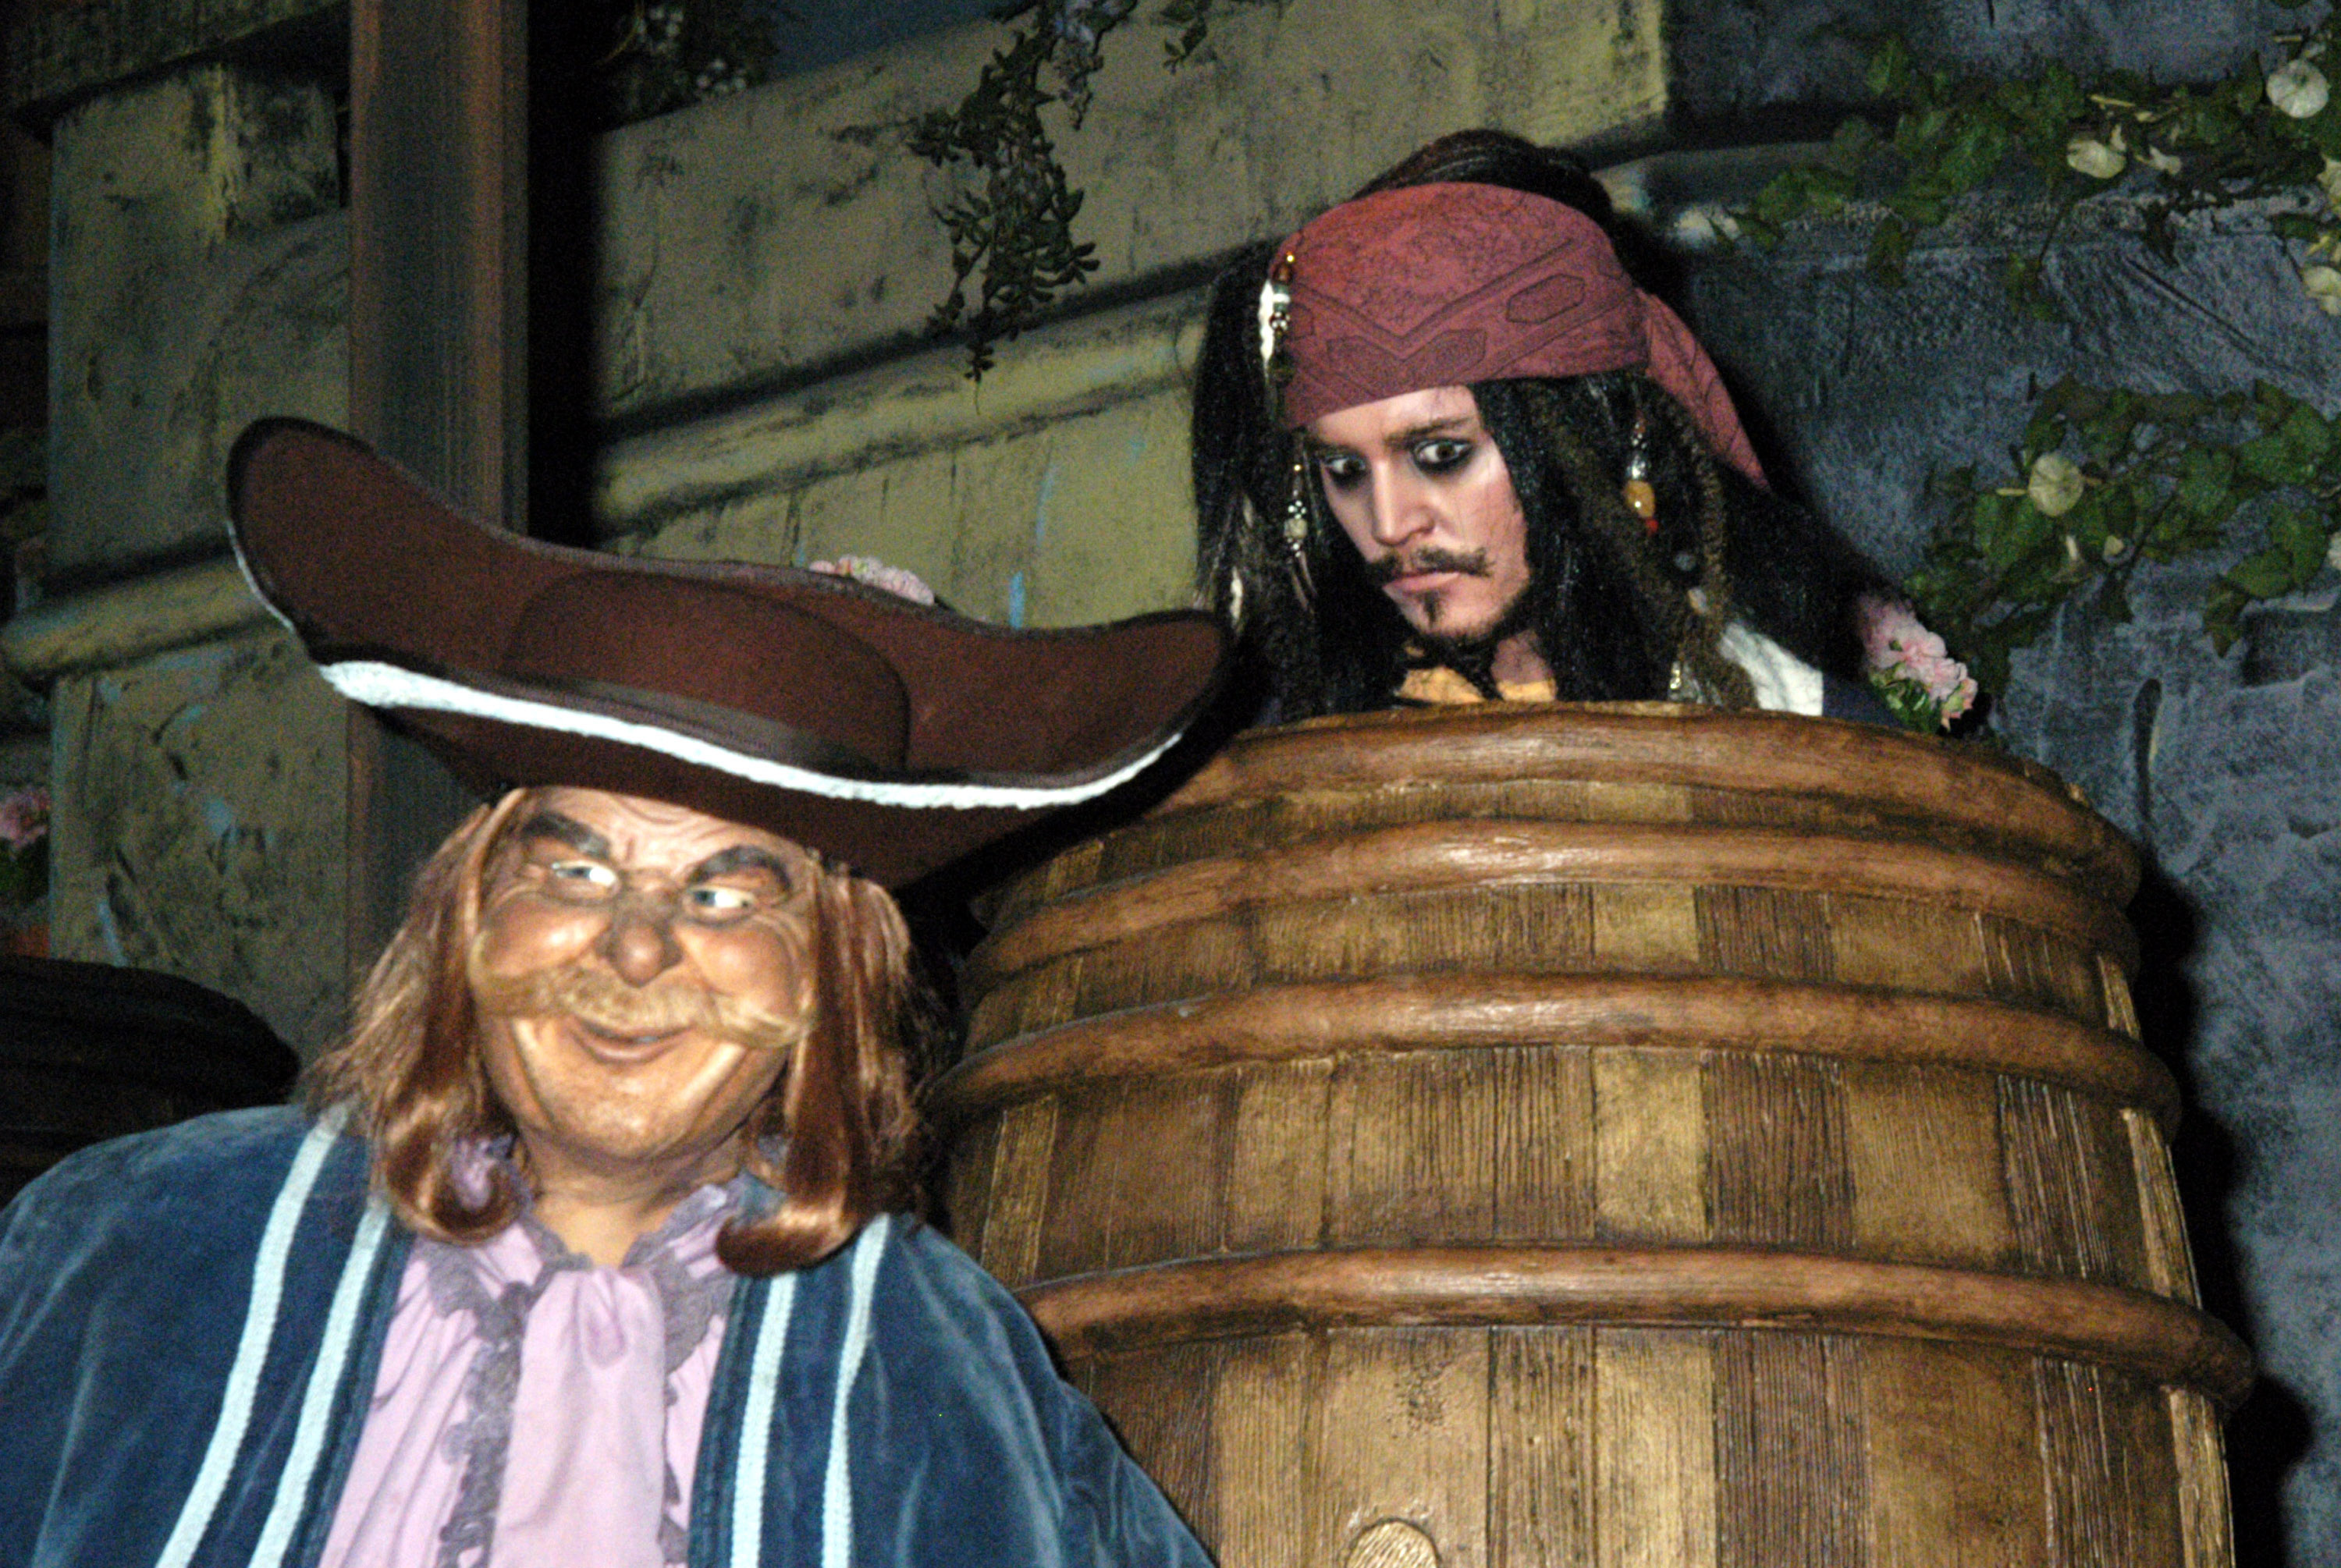 jack sparrow in the pirates of the caribbean ride